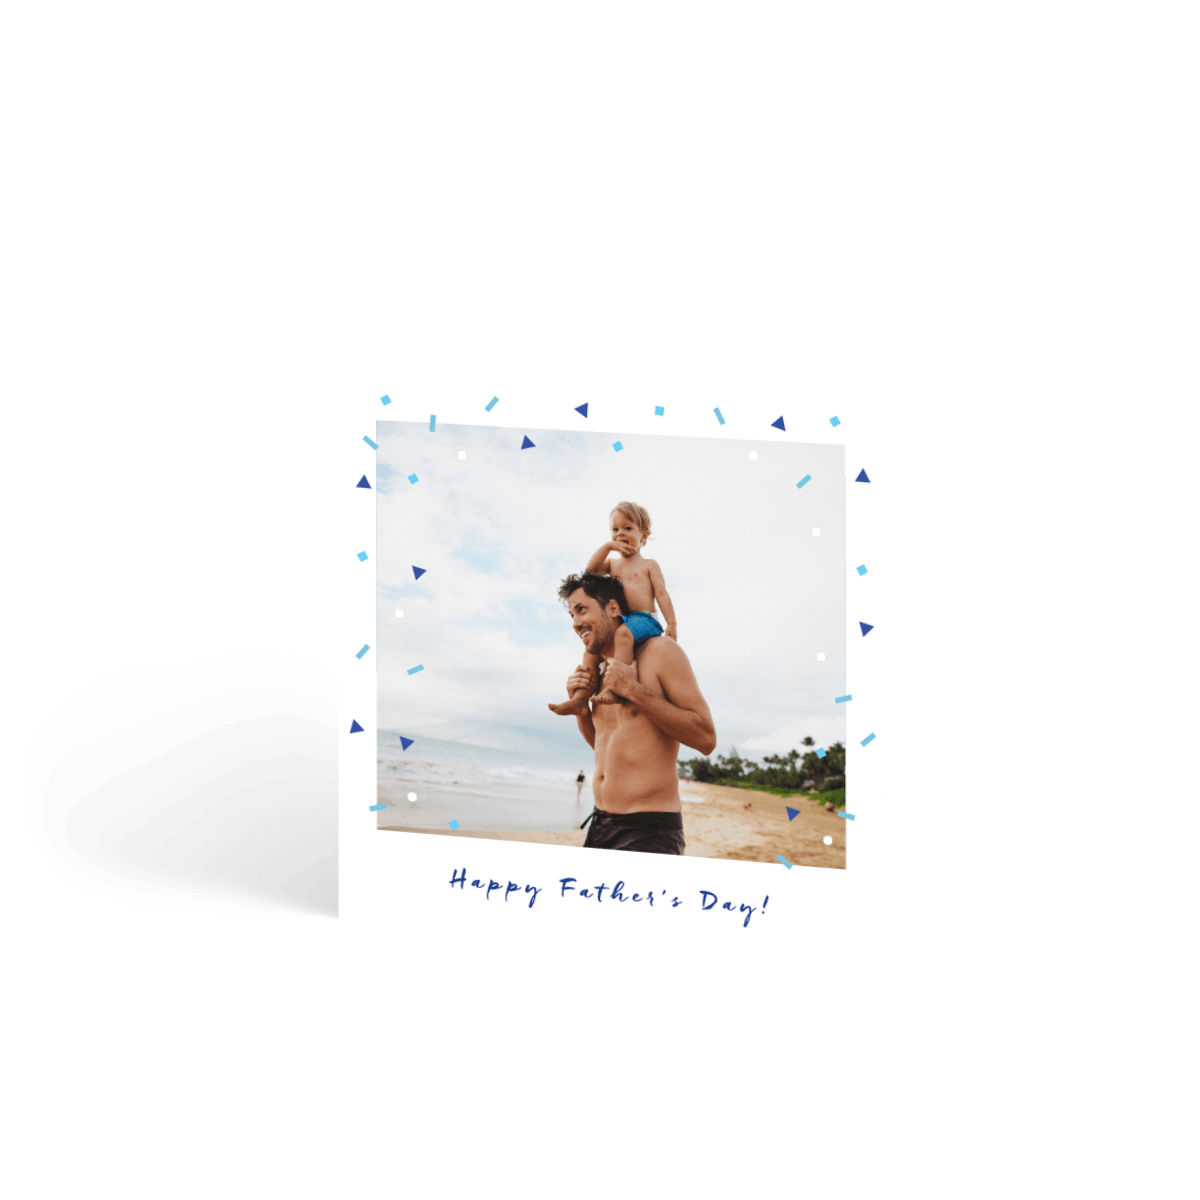 Https%3a%2f%2fwww.papier.com%2fproduct image%2f38542%2f16%2ffather s day blue confetti 9575 front 1581455670.png?ixlib=rb 1.1